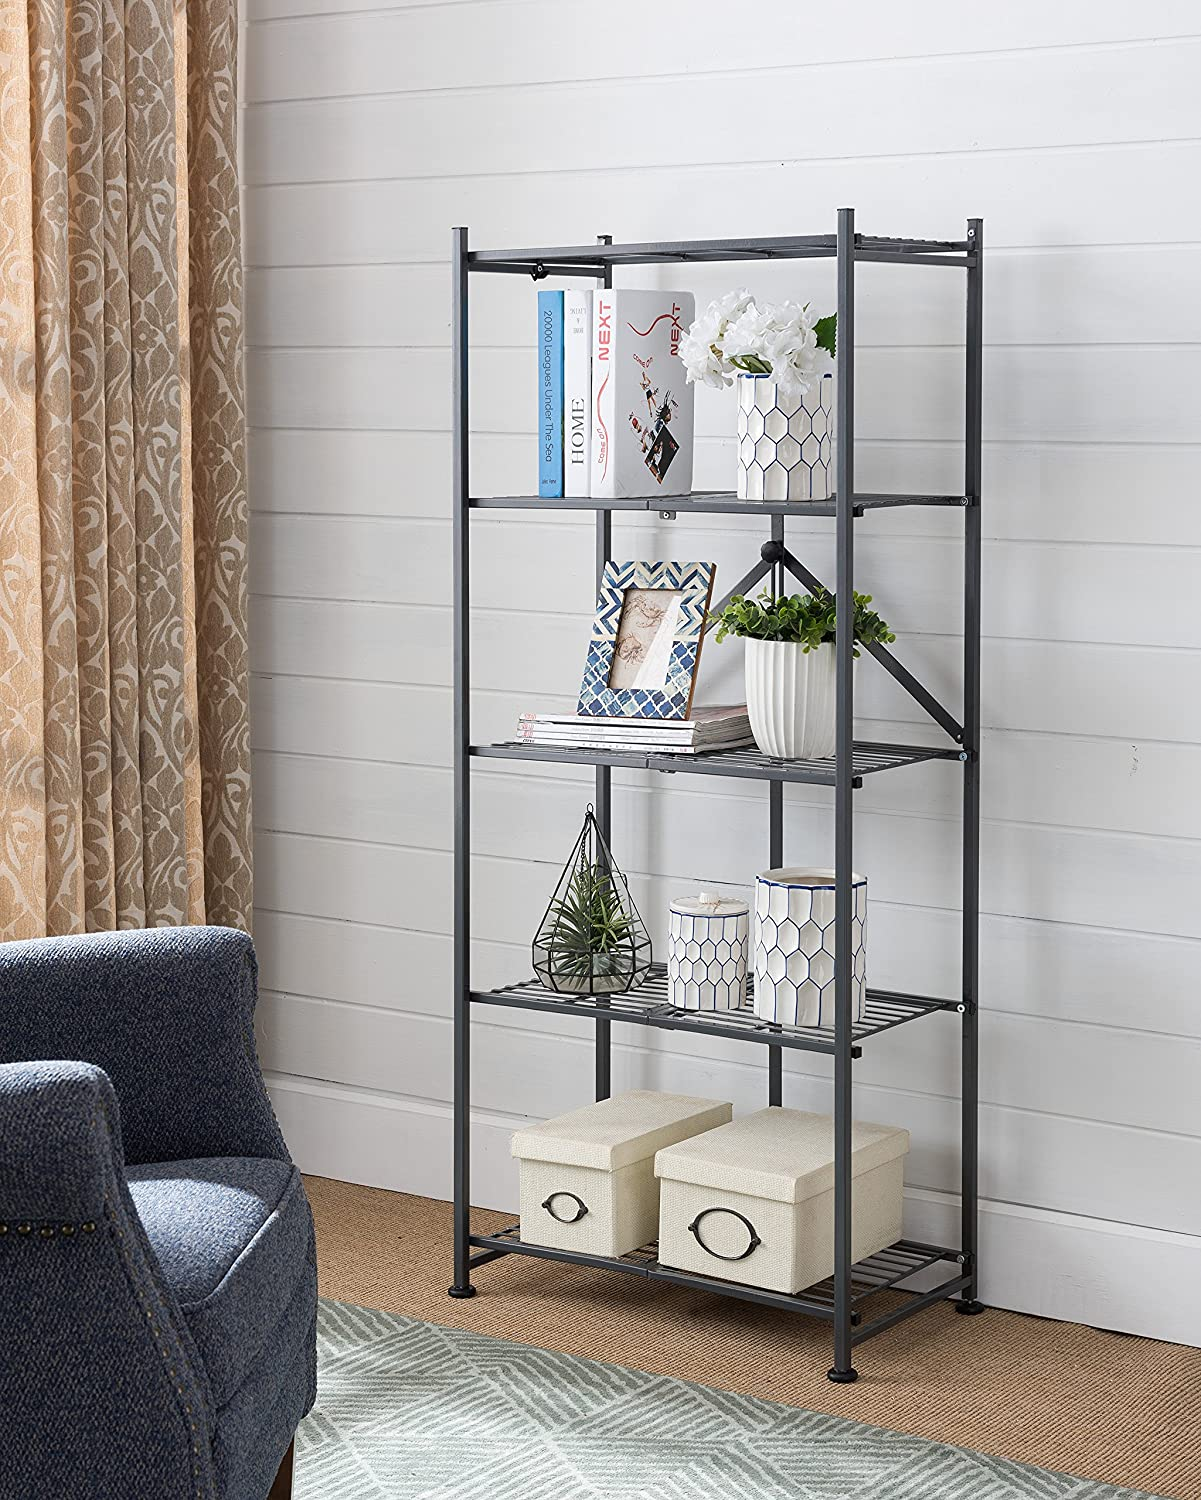 Kings Brand Gray Metal Home & Office Folding Storage Bookcase Organizer Display Unit, 3 Tier, 3 Tier Kings Brand Furniture BK2403